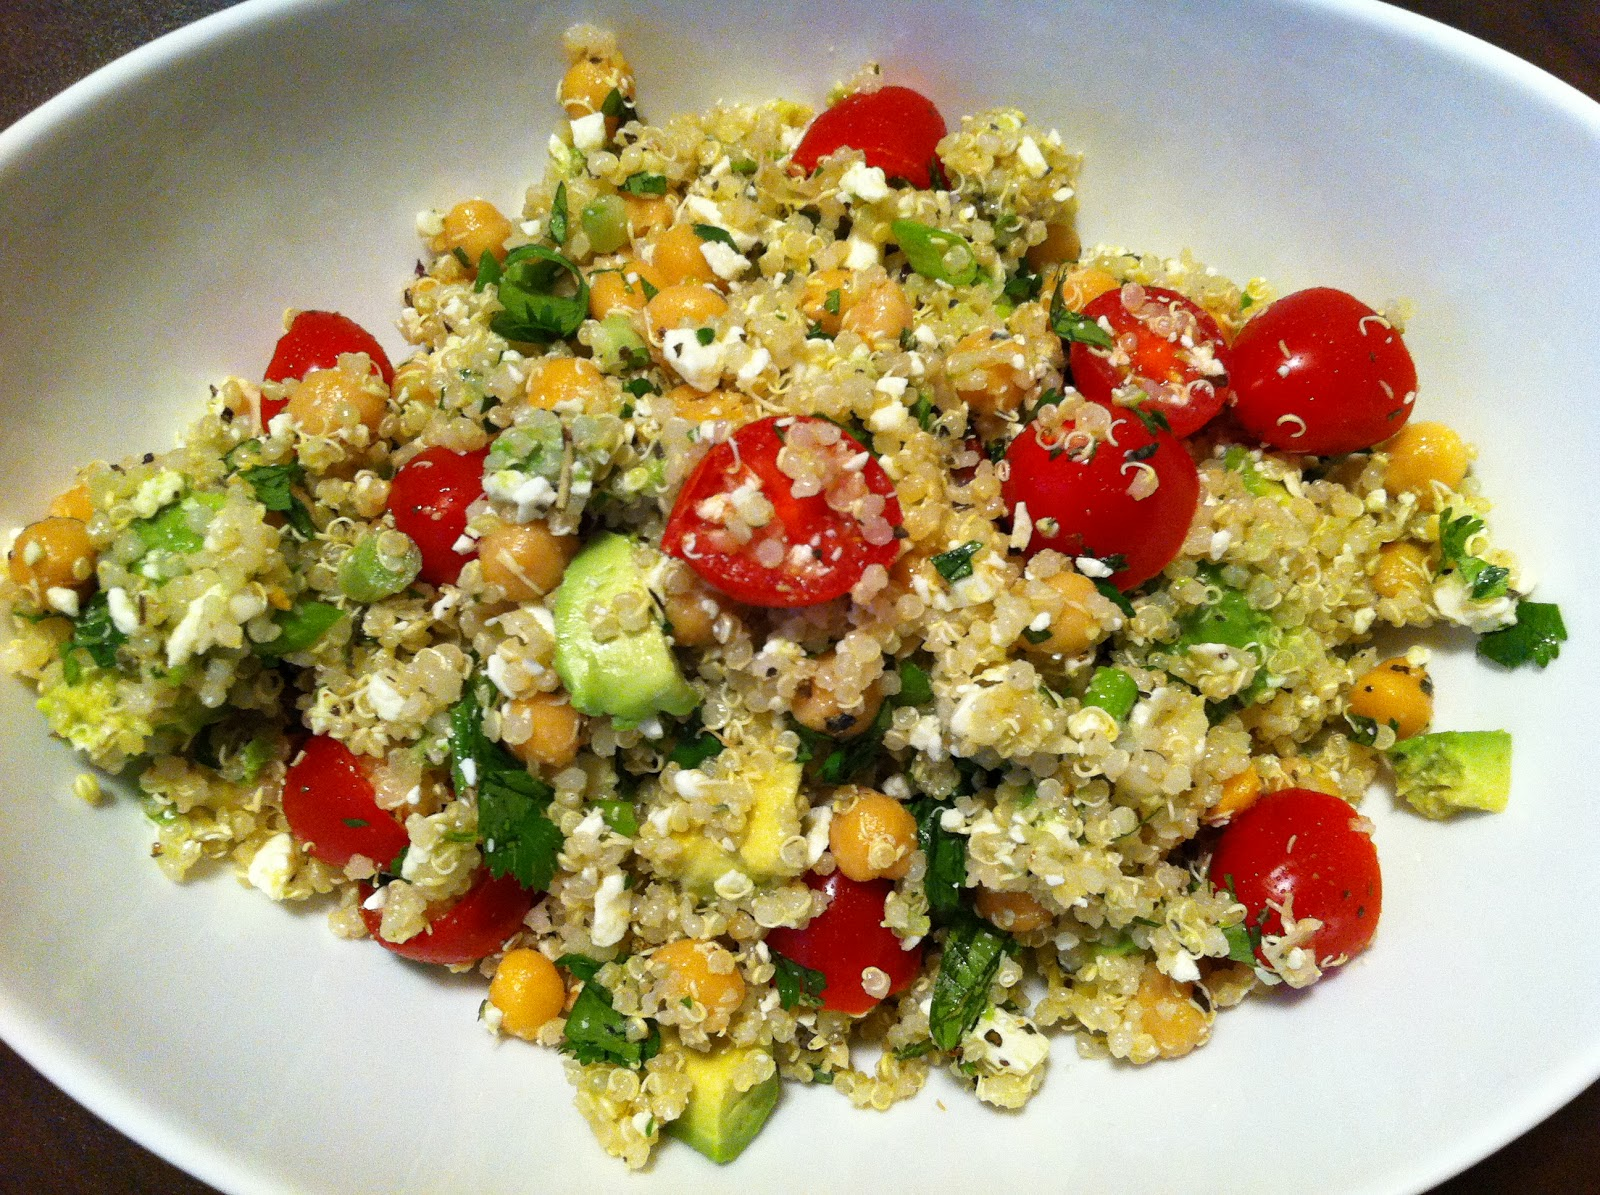 Playing With My Food!: Quinoa Salad with Chickpeas ...Quinoa Salad With Avocado